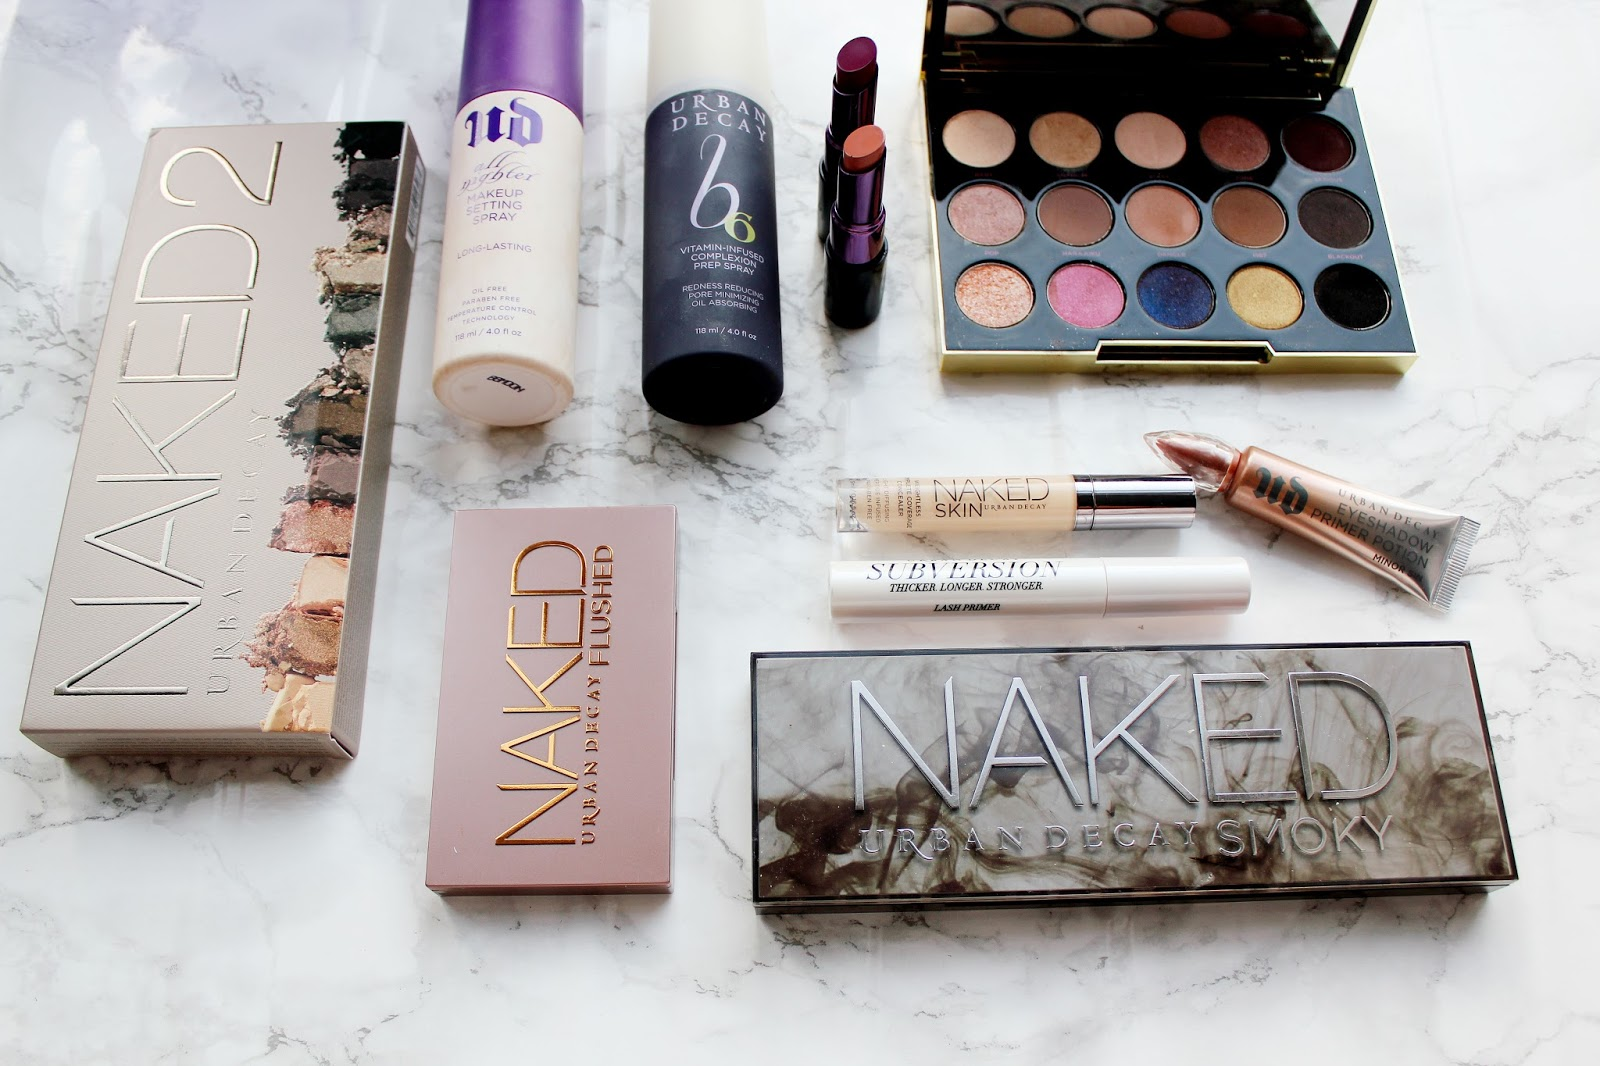 Beauty: My Favourite Urban Decay Products